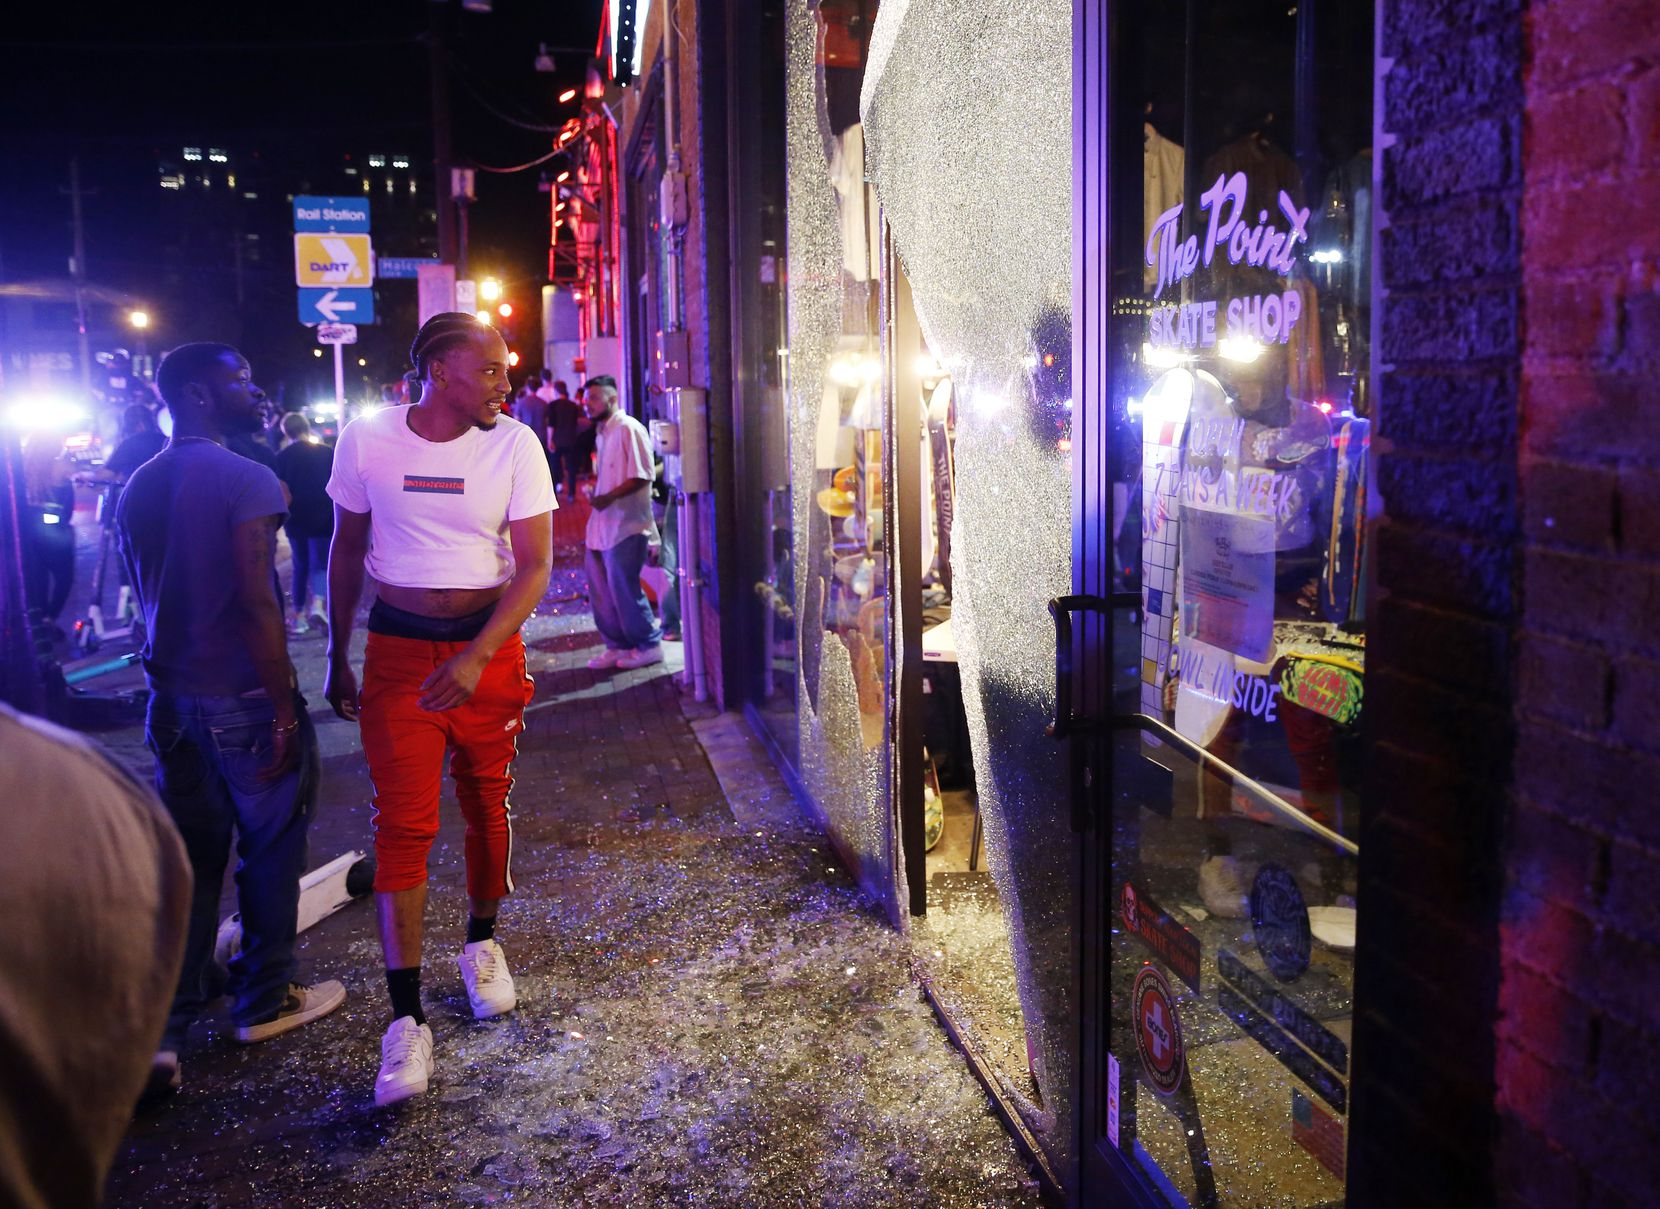 People look inside of the busted window of The Point Skate Shop along Main Street in Deep Ellum in downtown Dallas, on Friday, May 29, 2020. George Floyd died in police custody in Minneapolis on May 25.